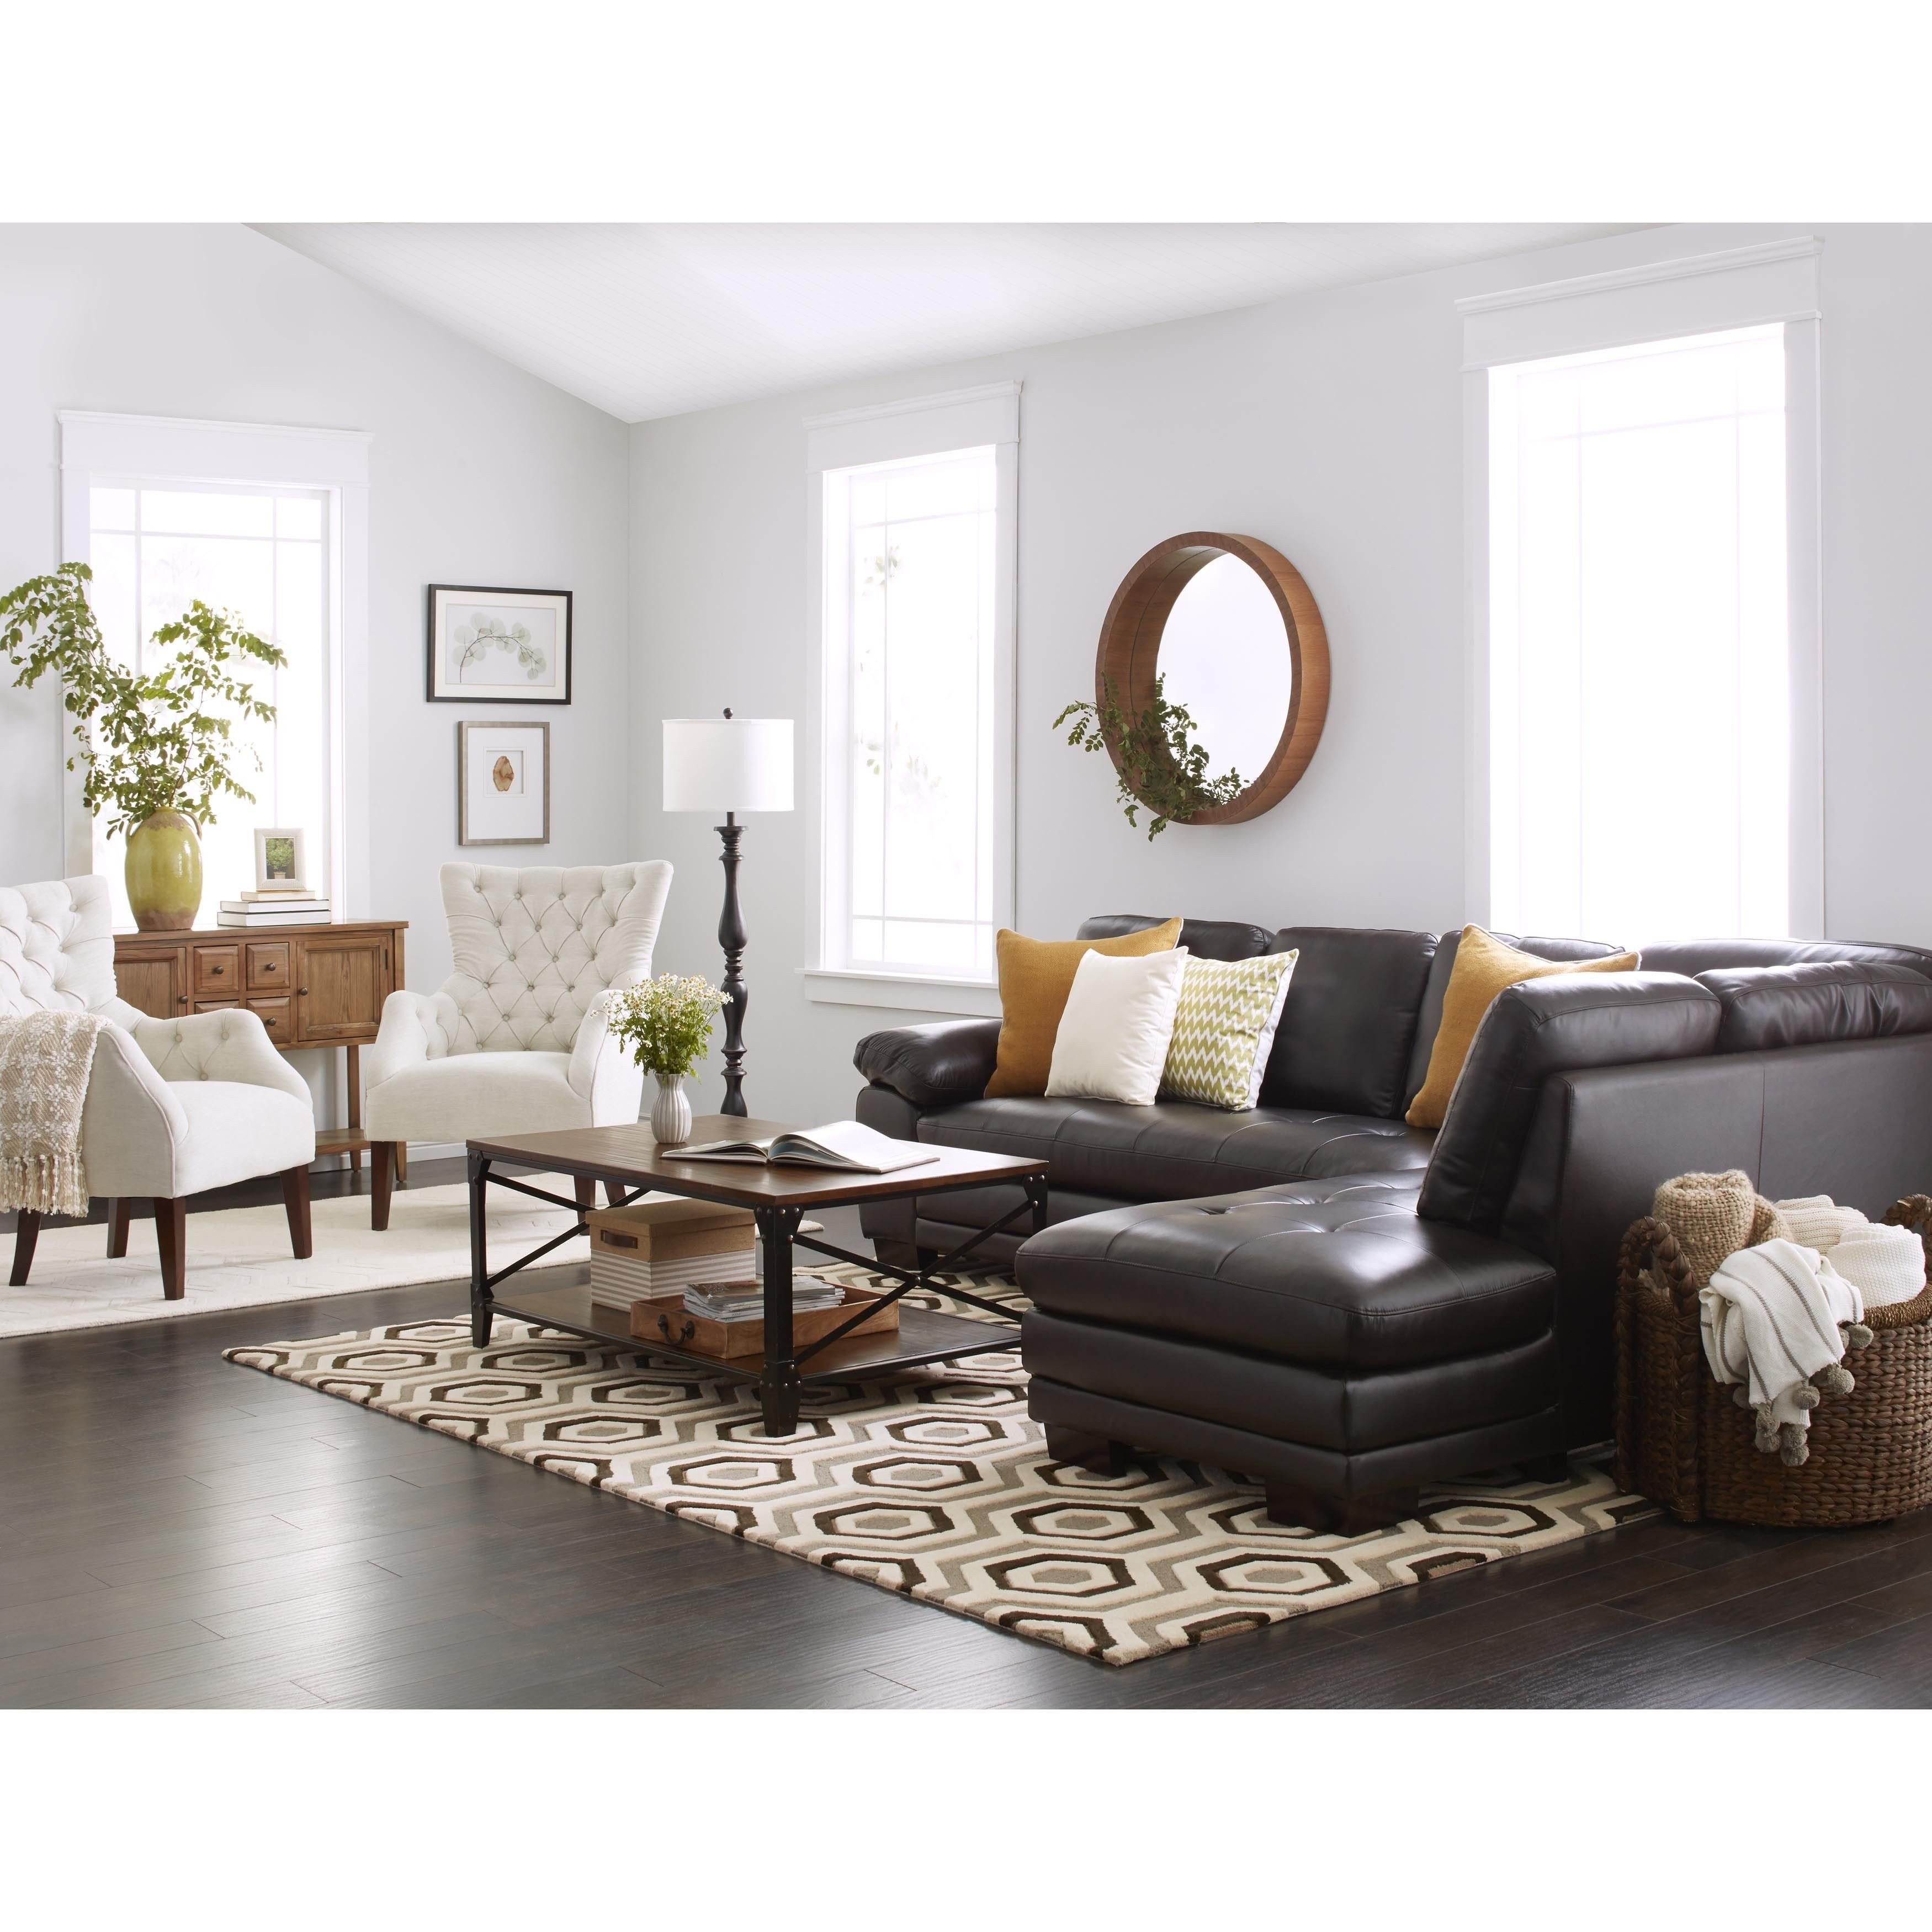 Living Room Decor with Sectional Abbyson Living Devonshire Brown Leather Tufted Sectional